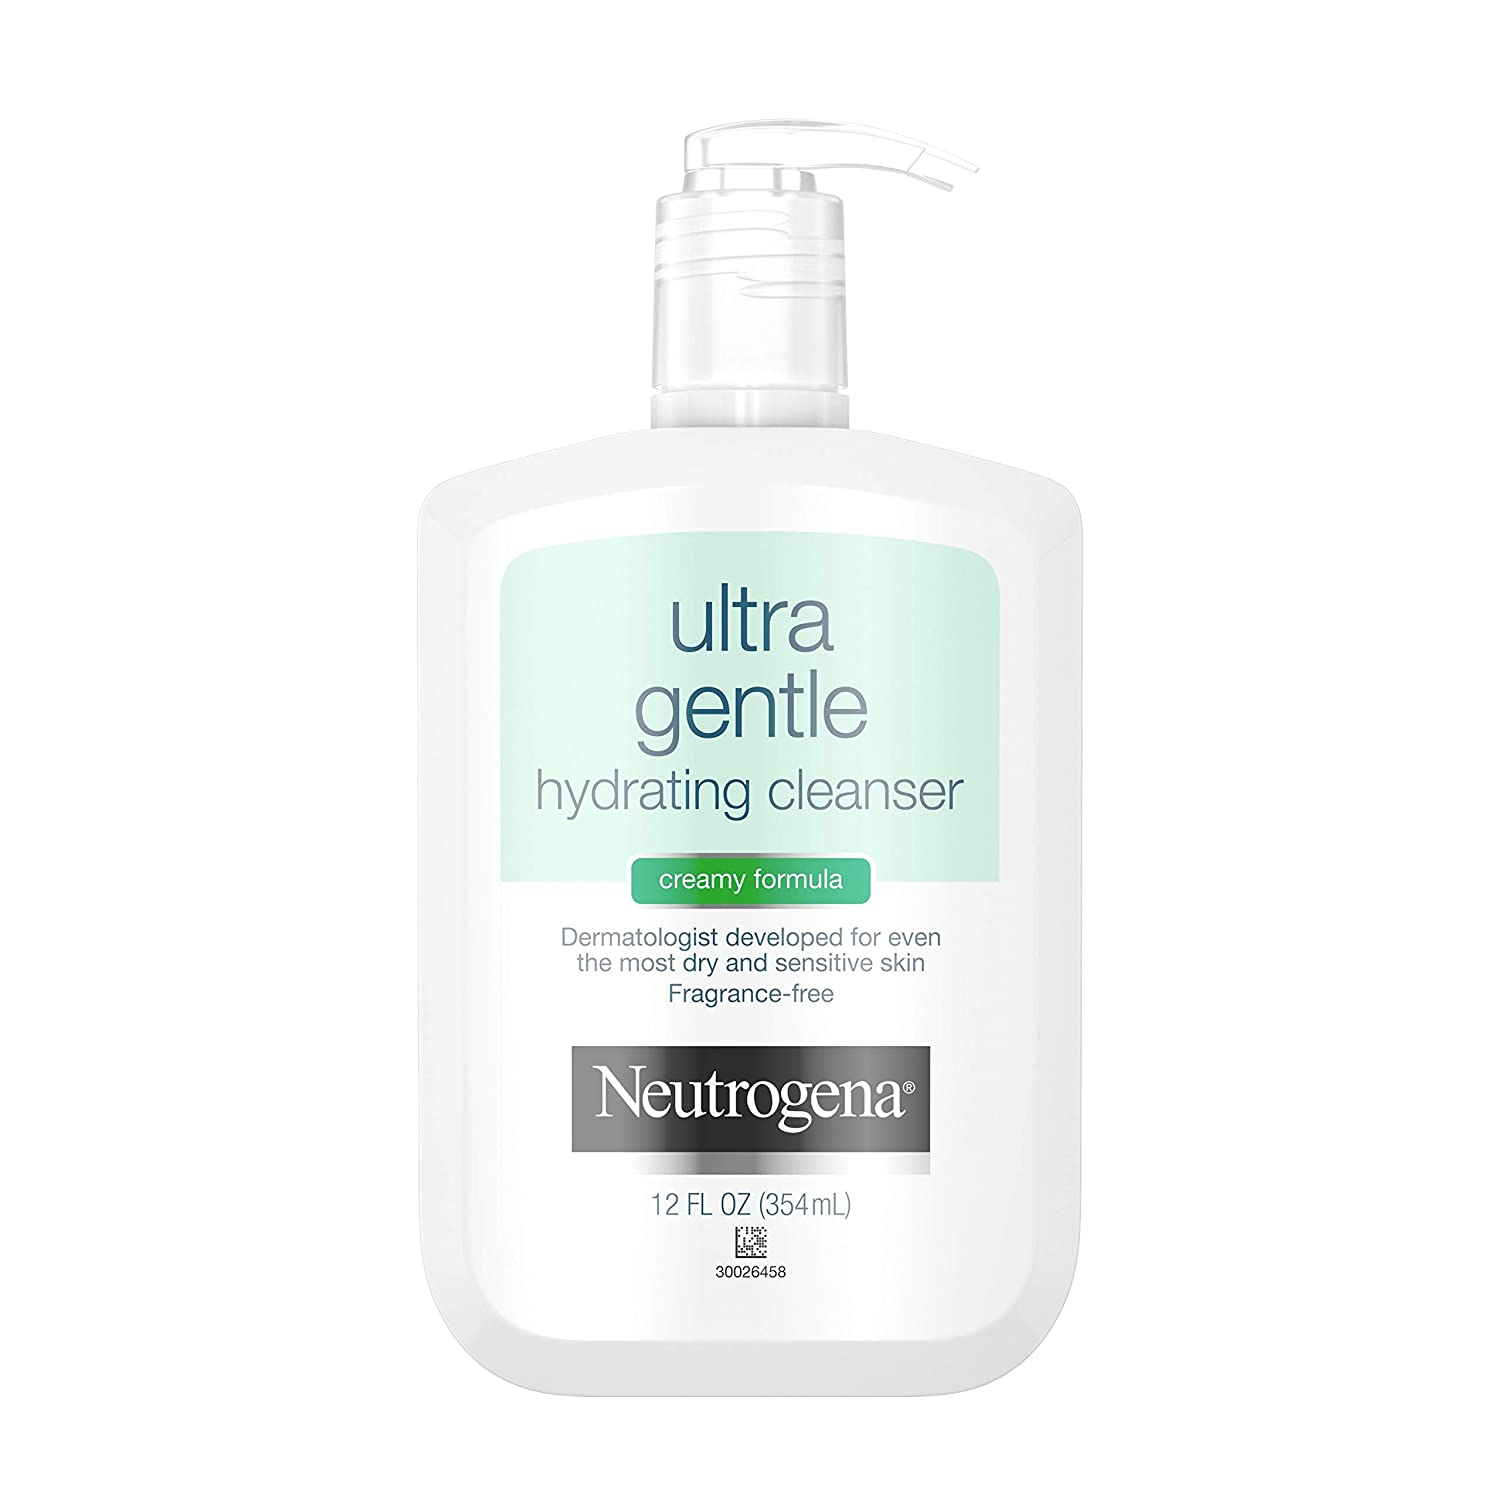 Neutrogena Ultra Gentle Hydrating Daily Facial Cleanser for Sensitive Skin; best men's skincare products